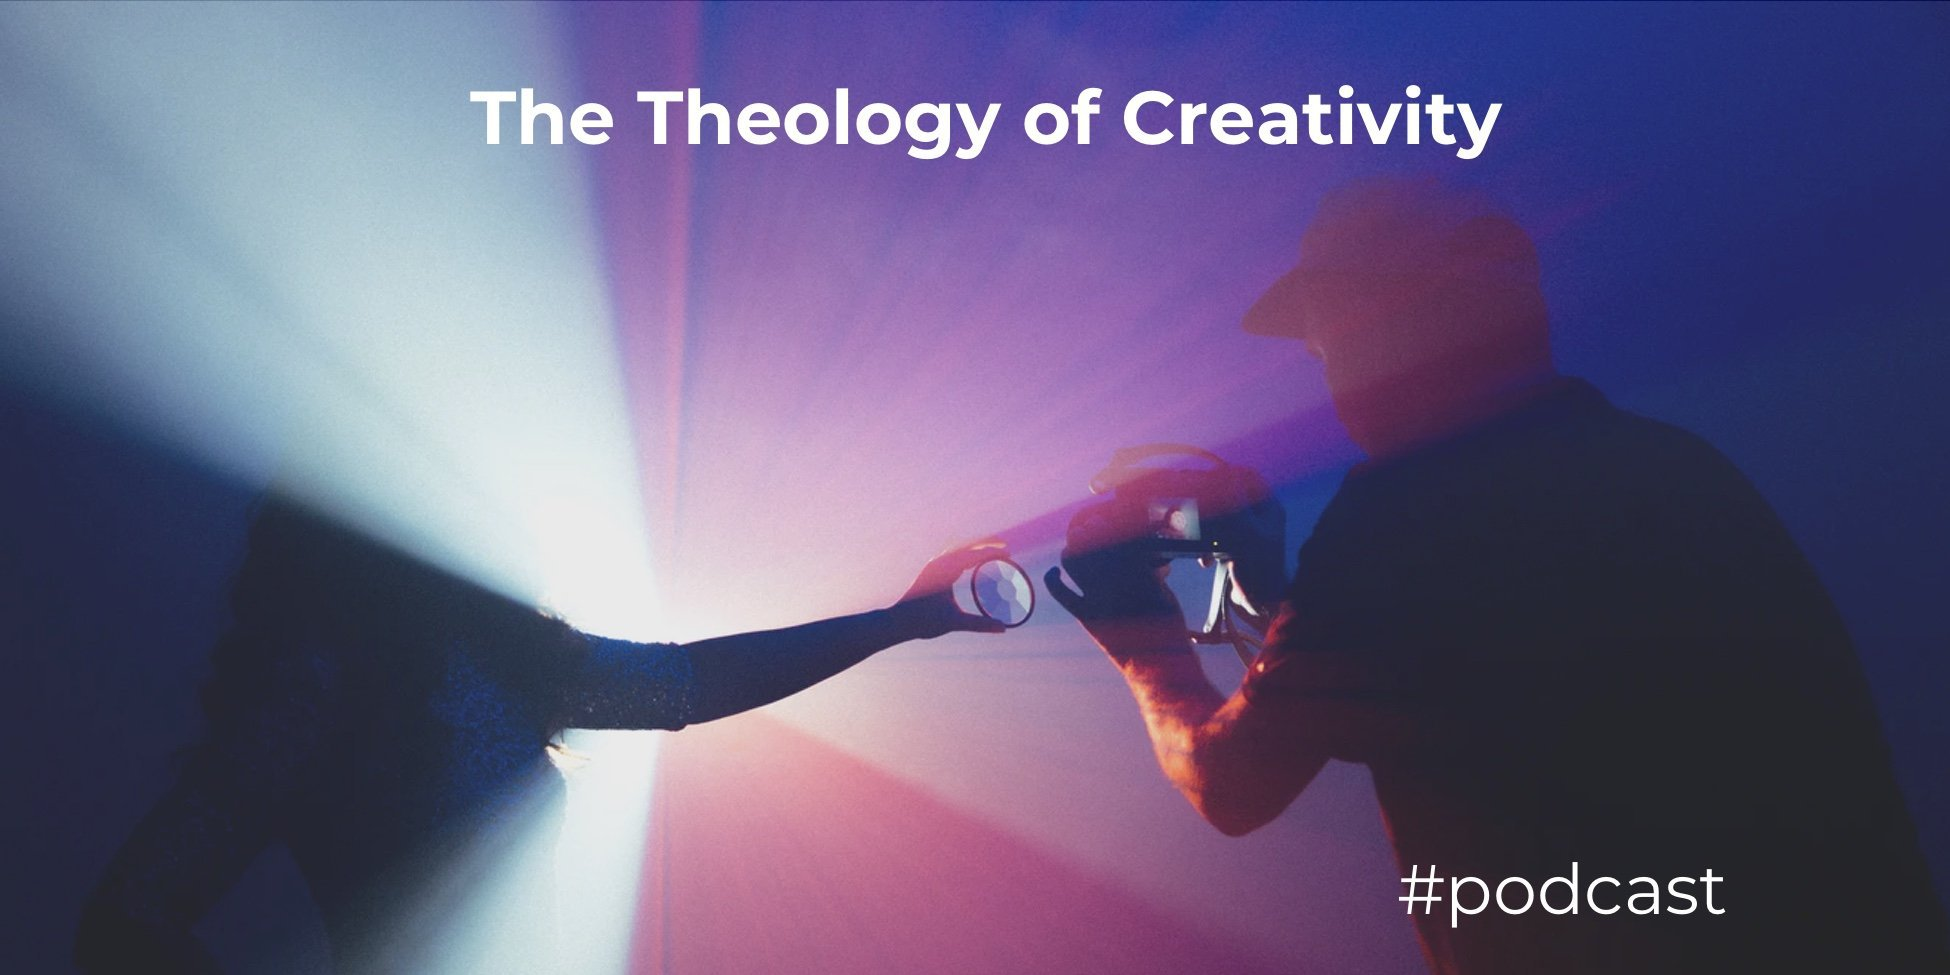 The Theology of Creativity and the Creative Process with Andrew Peterson